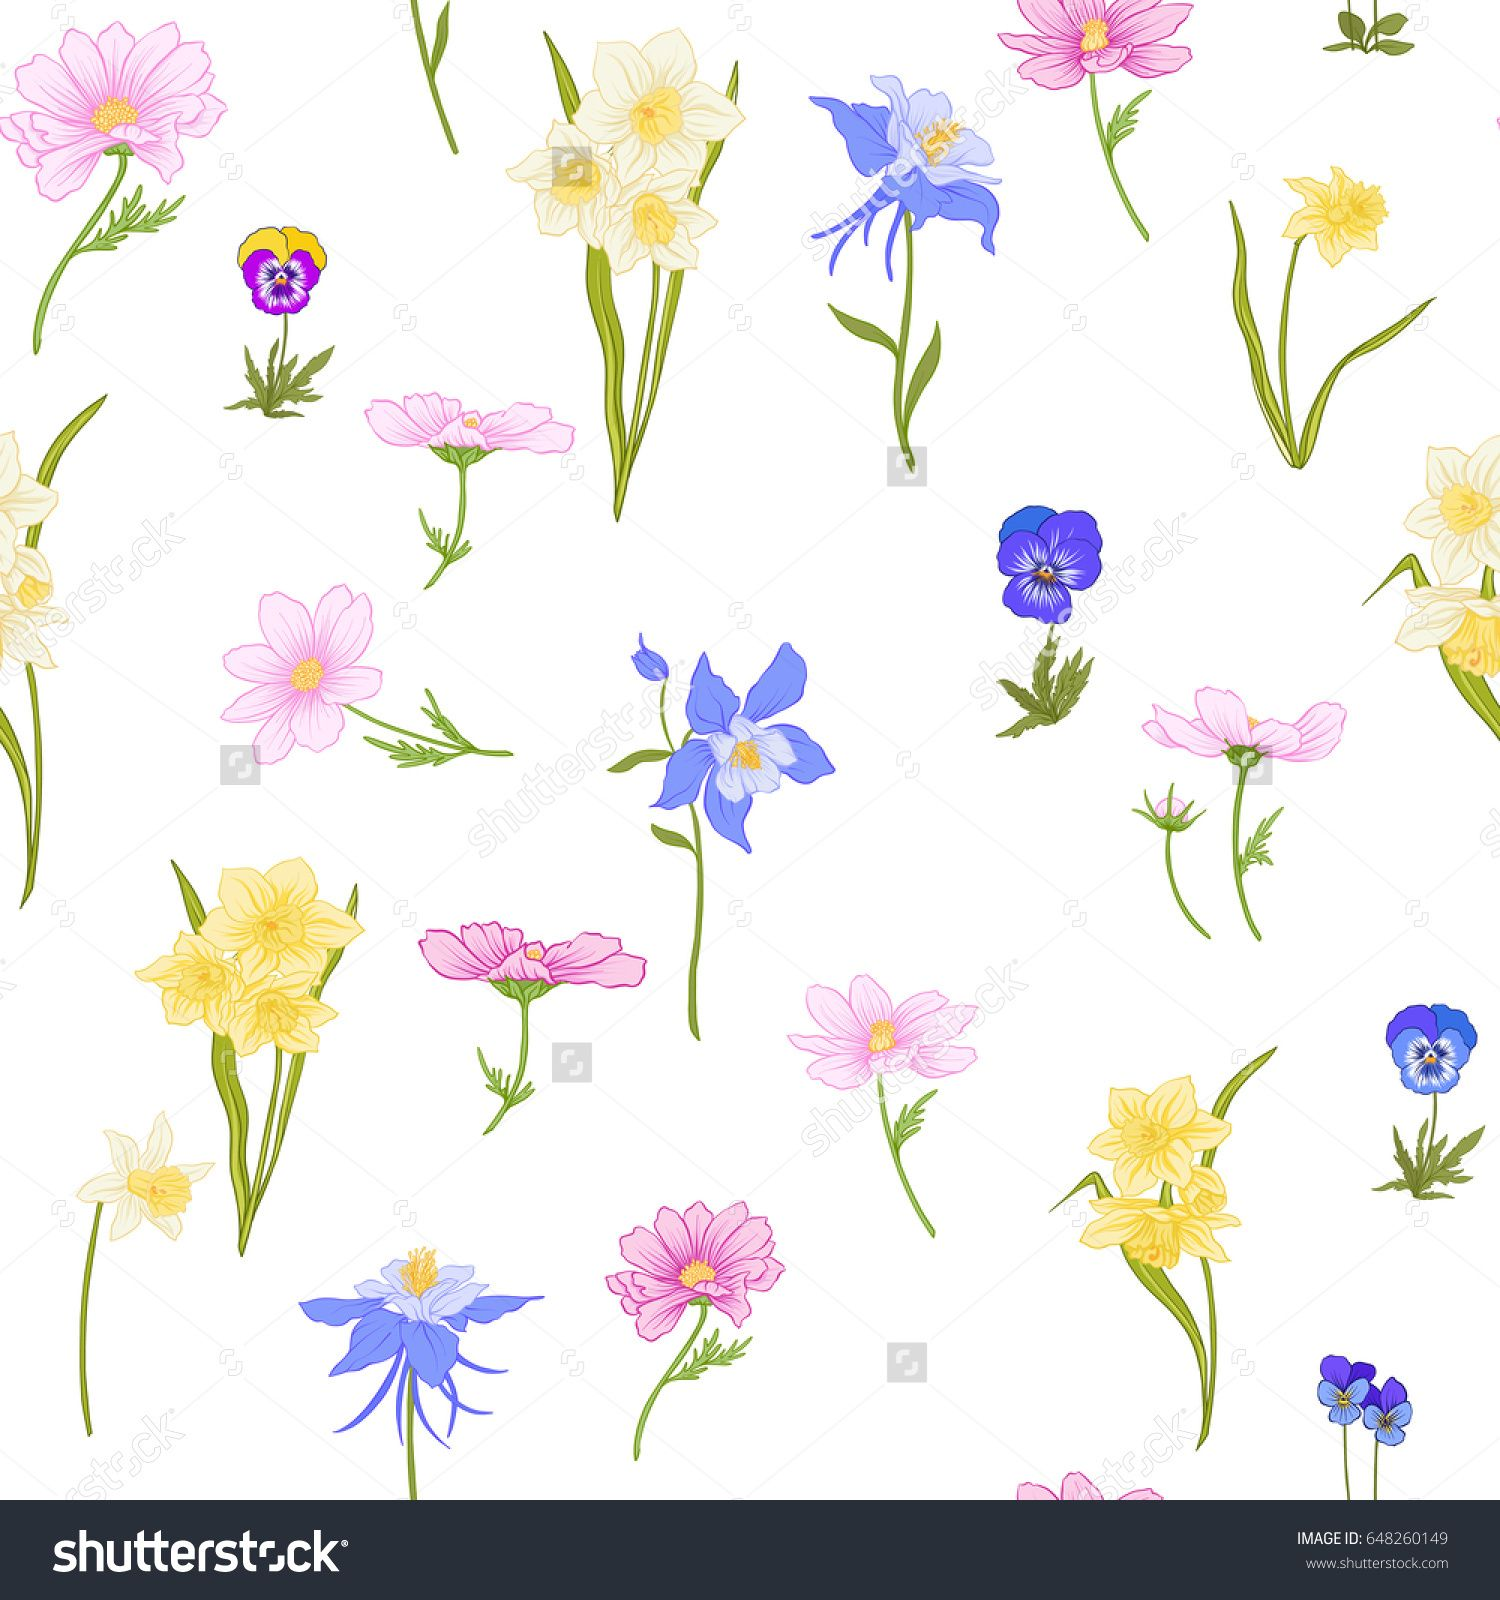 Colored Floral Seamless Pattern With Flowers In Botanical Style On A